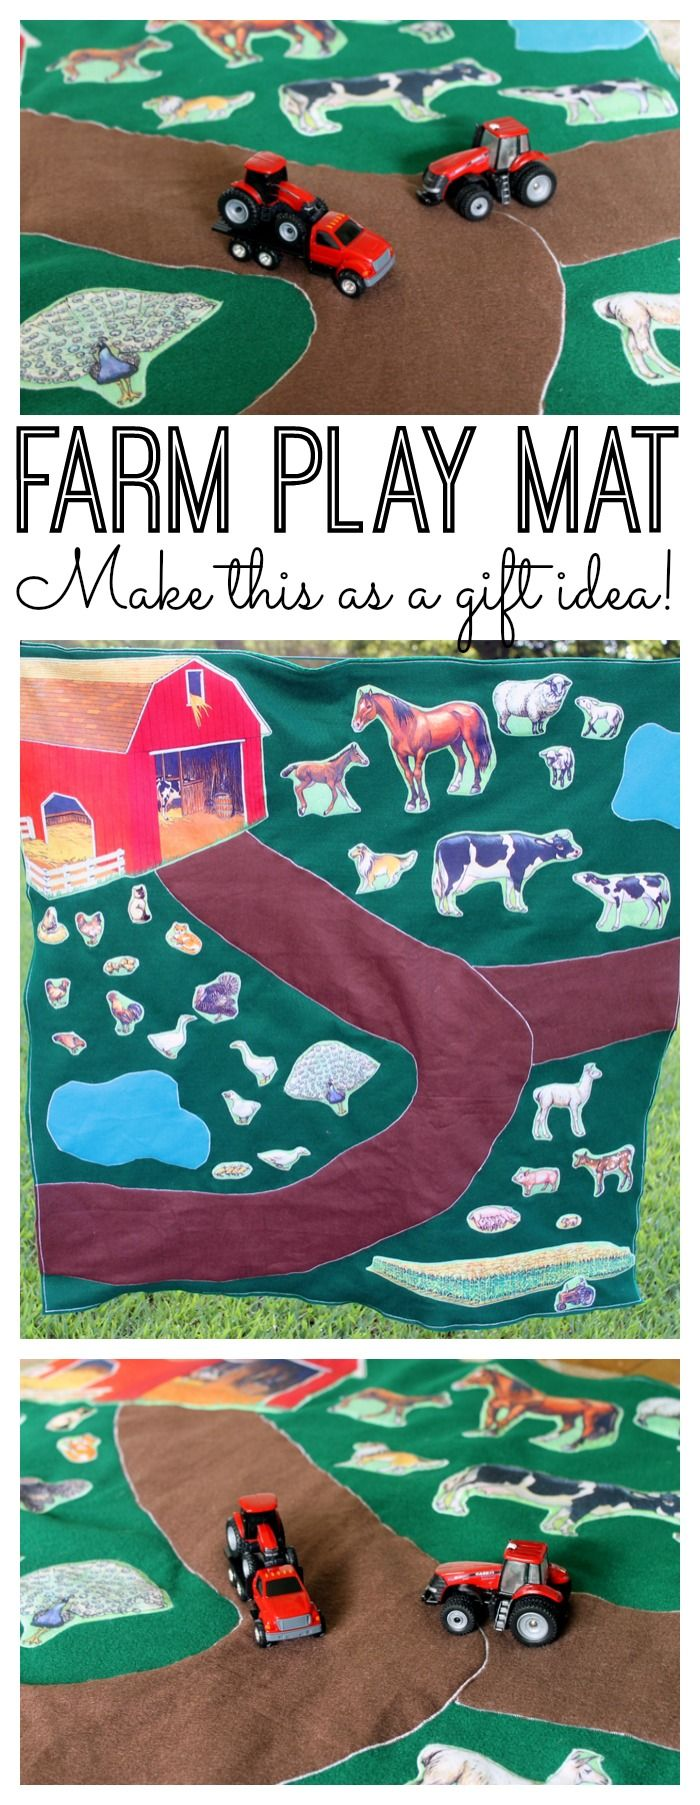 DIY Farm Play Mat Handmade Gift Idea Sewing projects for